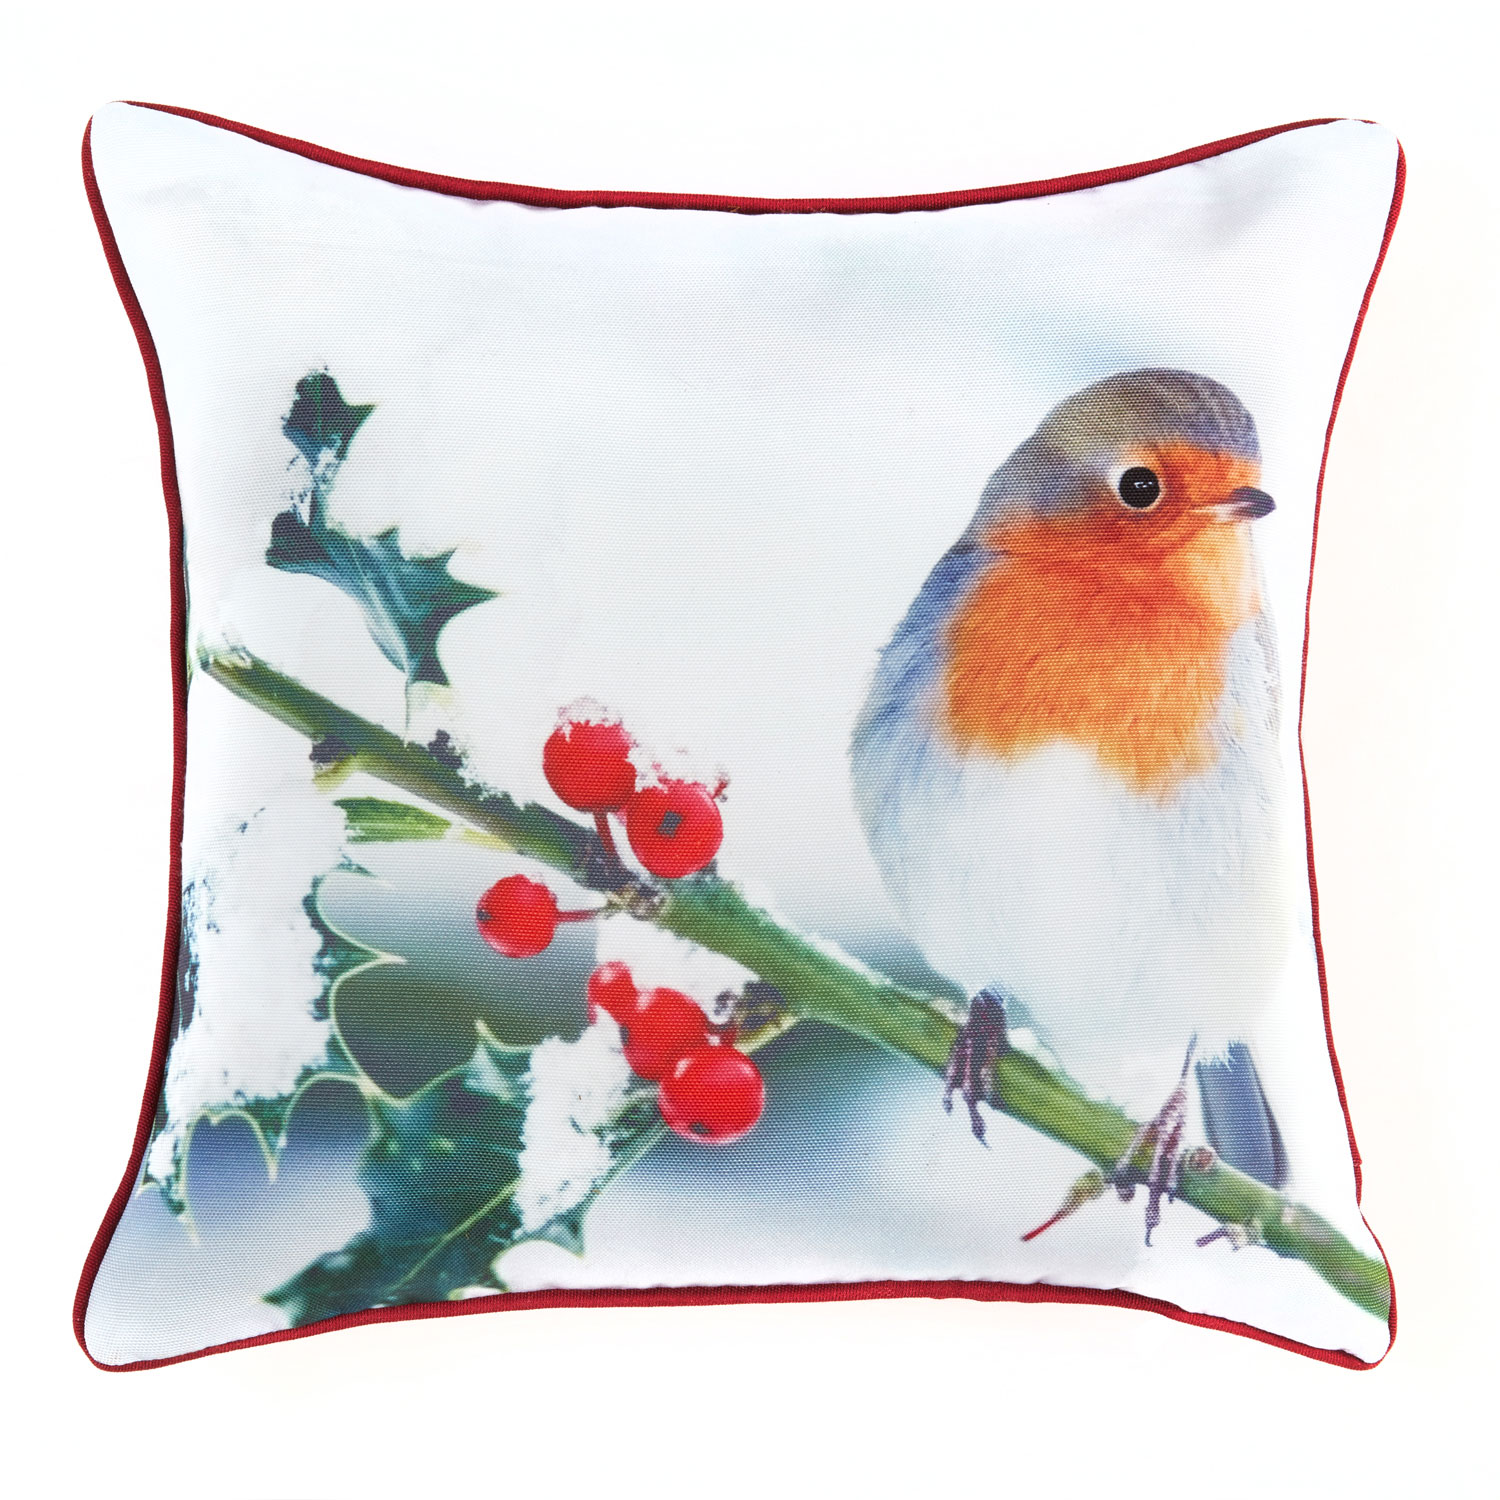 Printed Hollowfibre Square Filled Robin Cushion